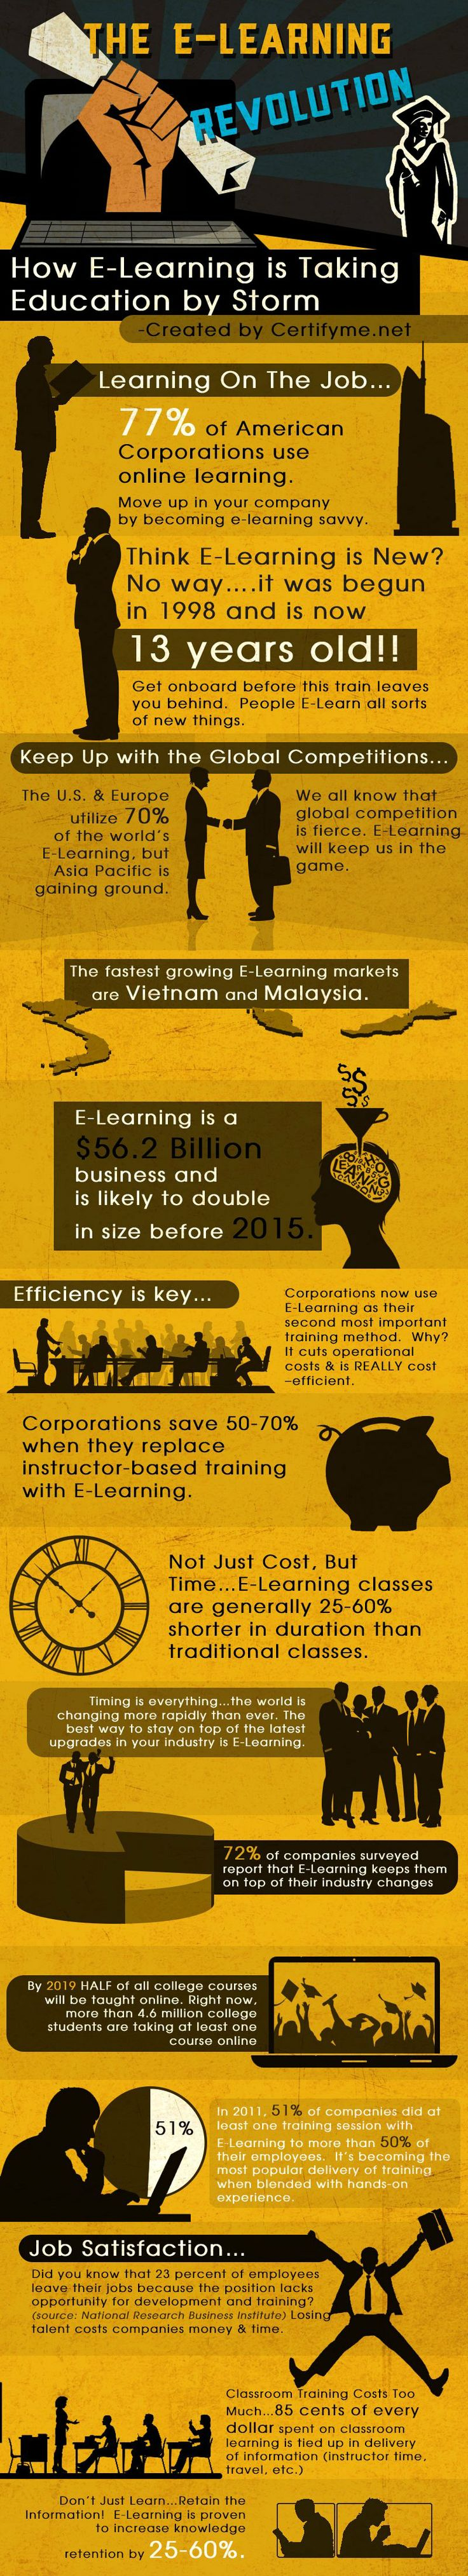 eLearning and employee engagement